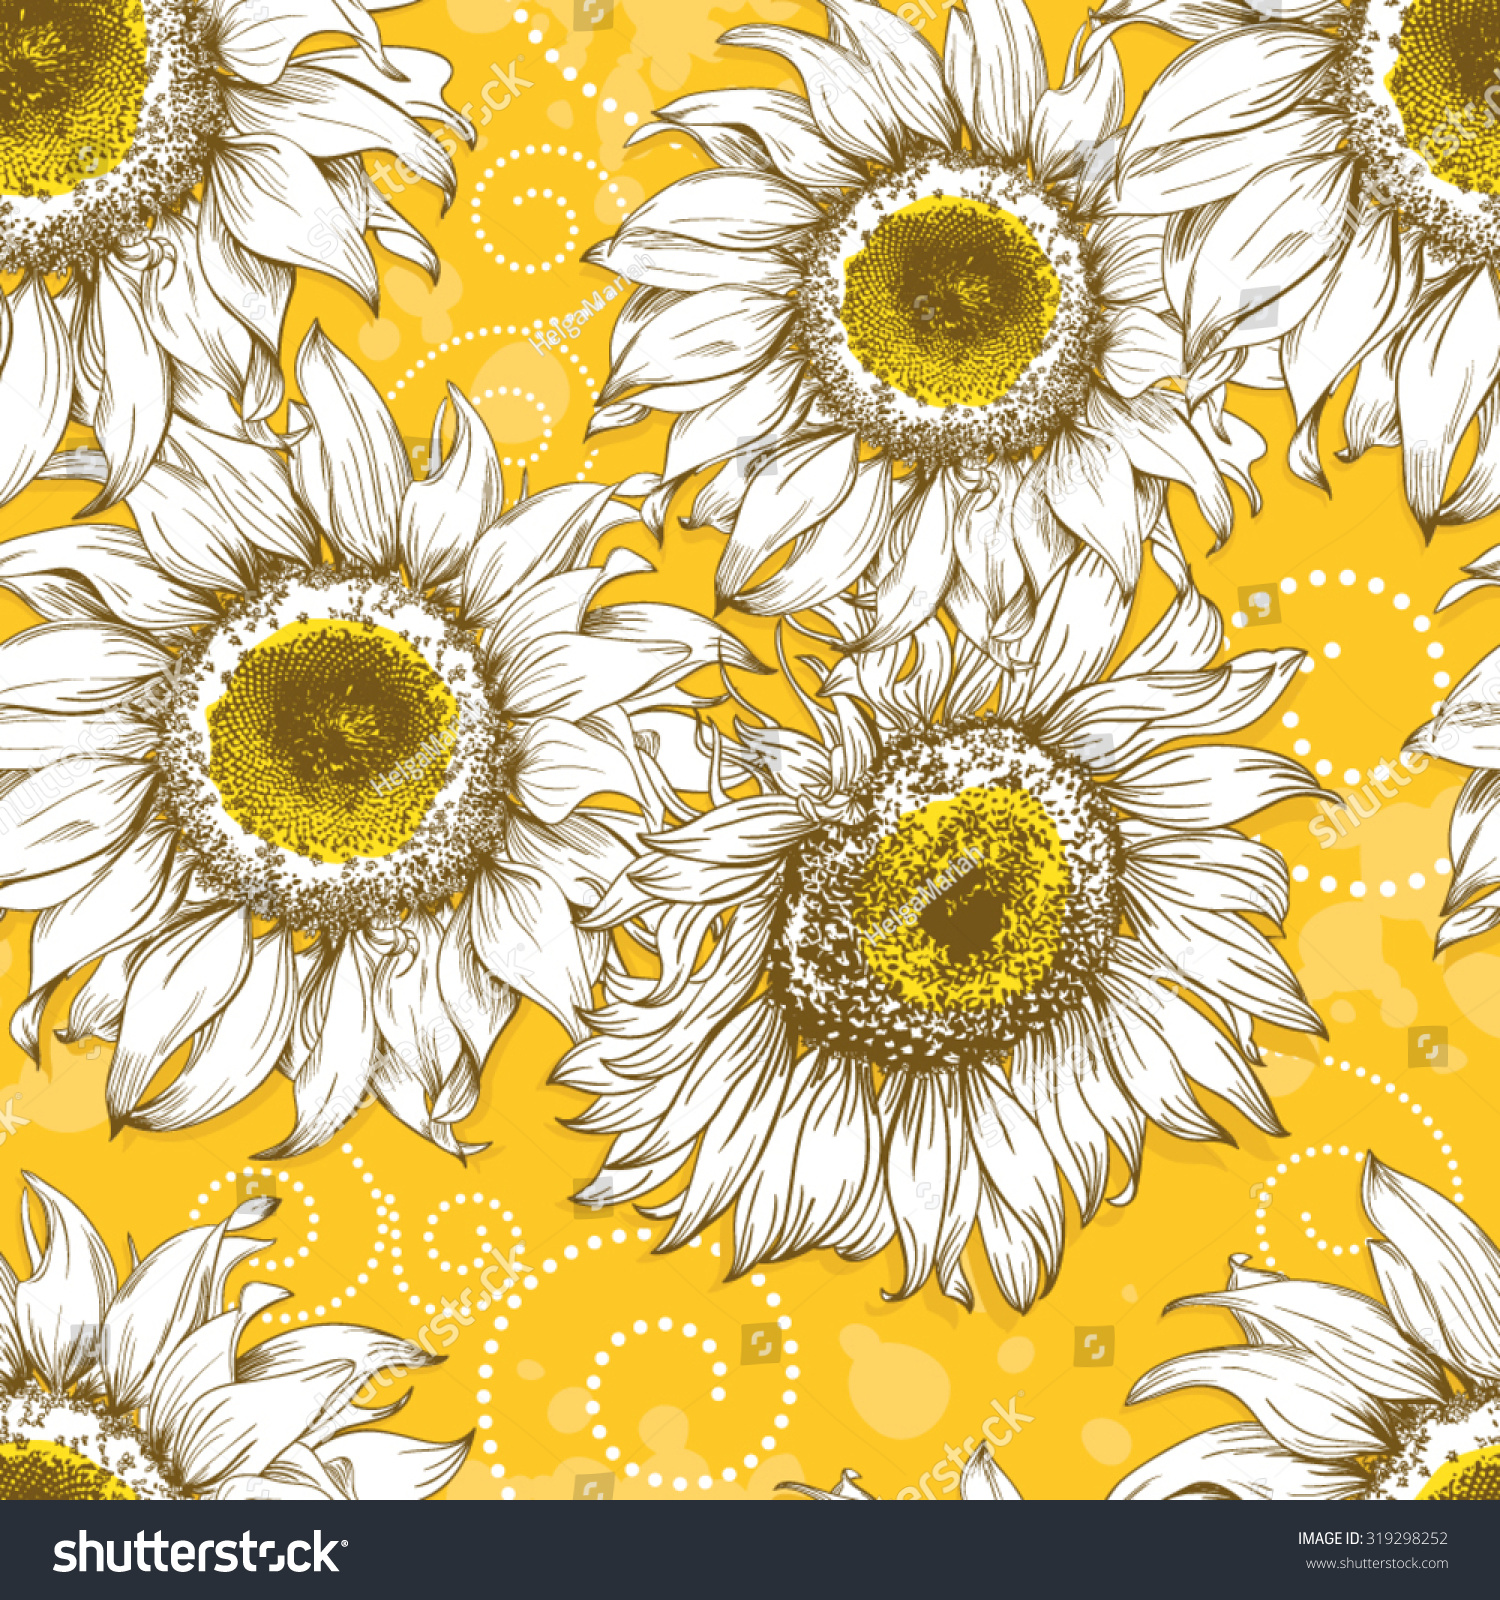 Yellow Vintage Sunflower Background With Hand Drawn Flower Heads Curls And Splashes